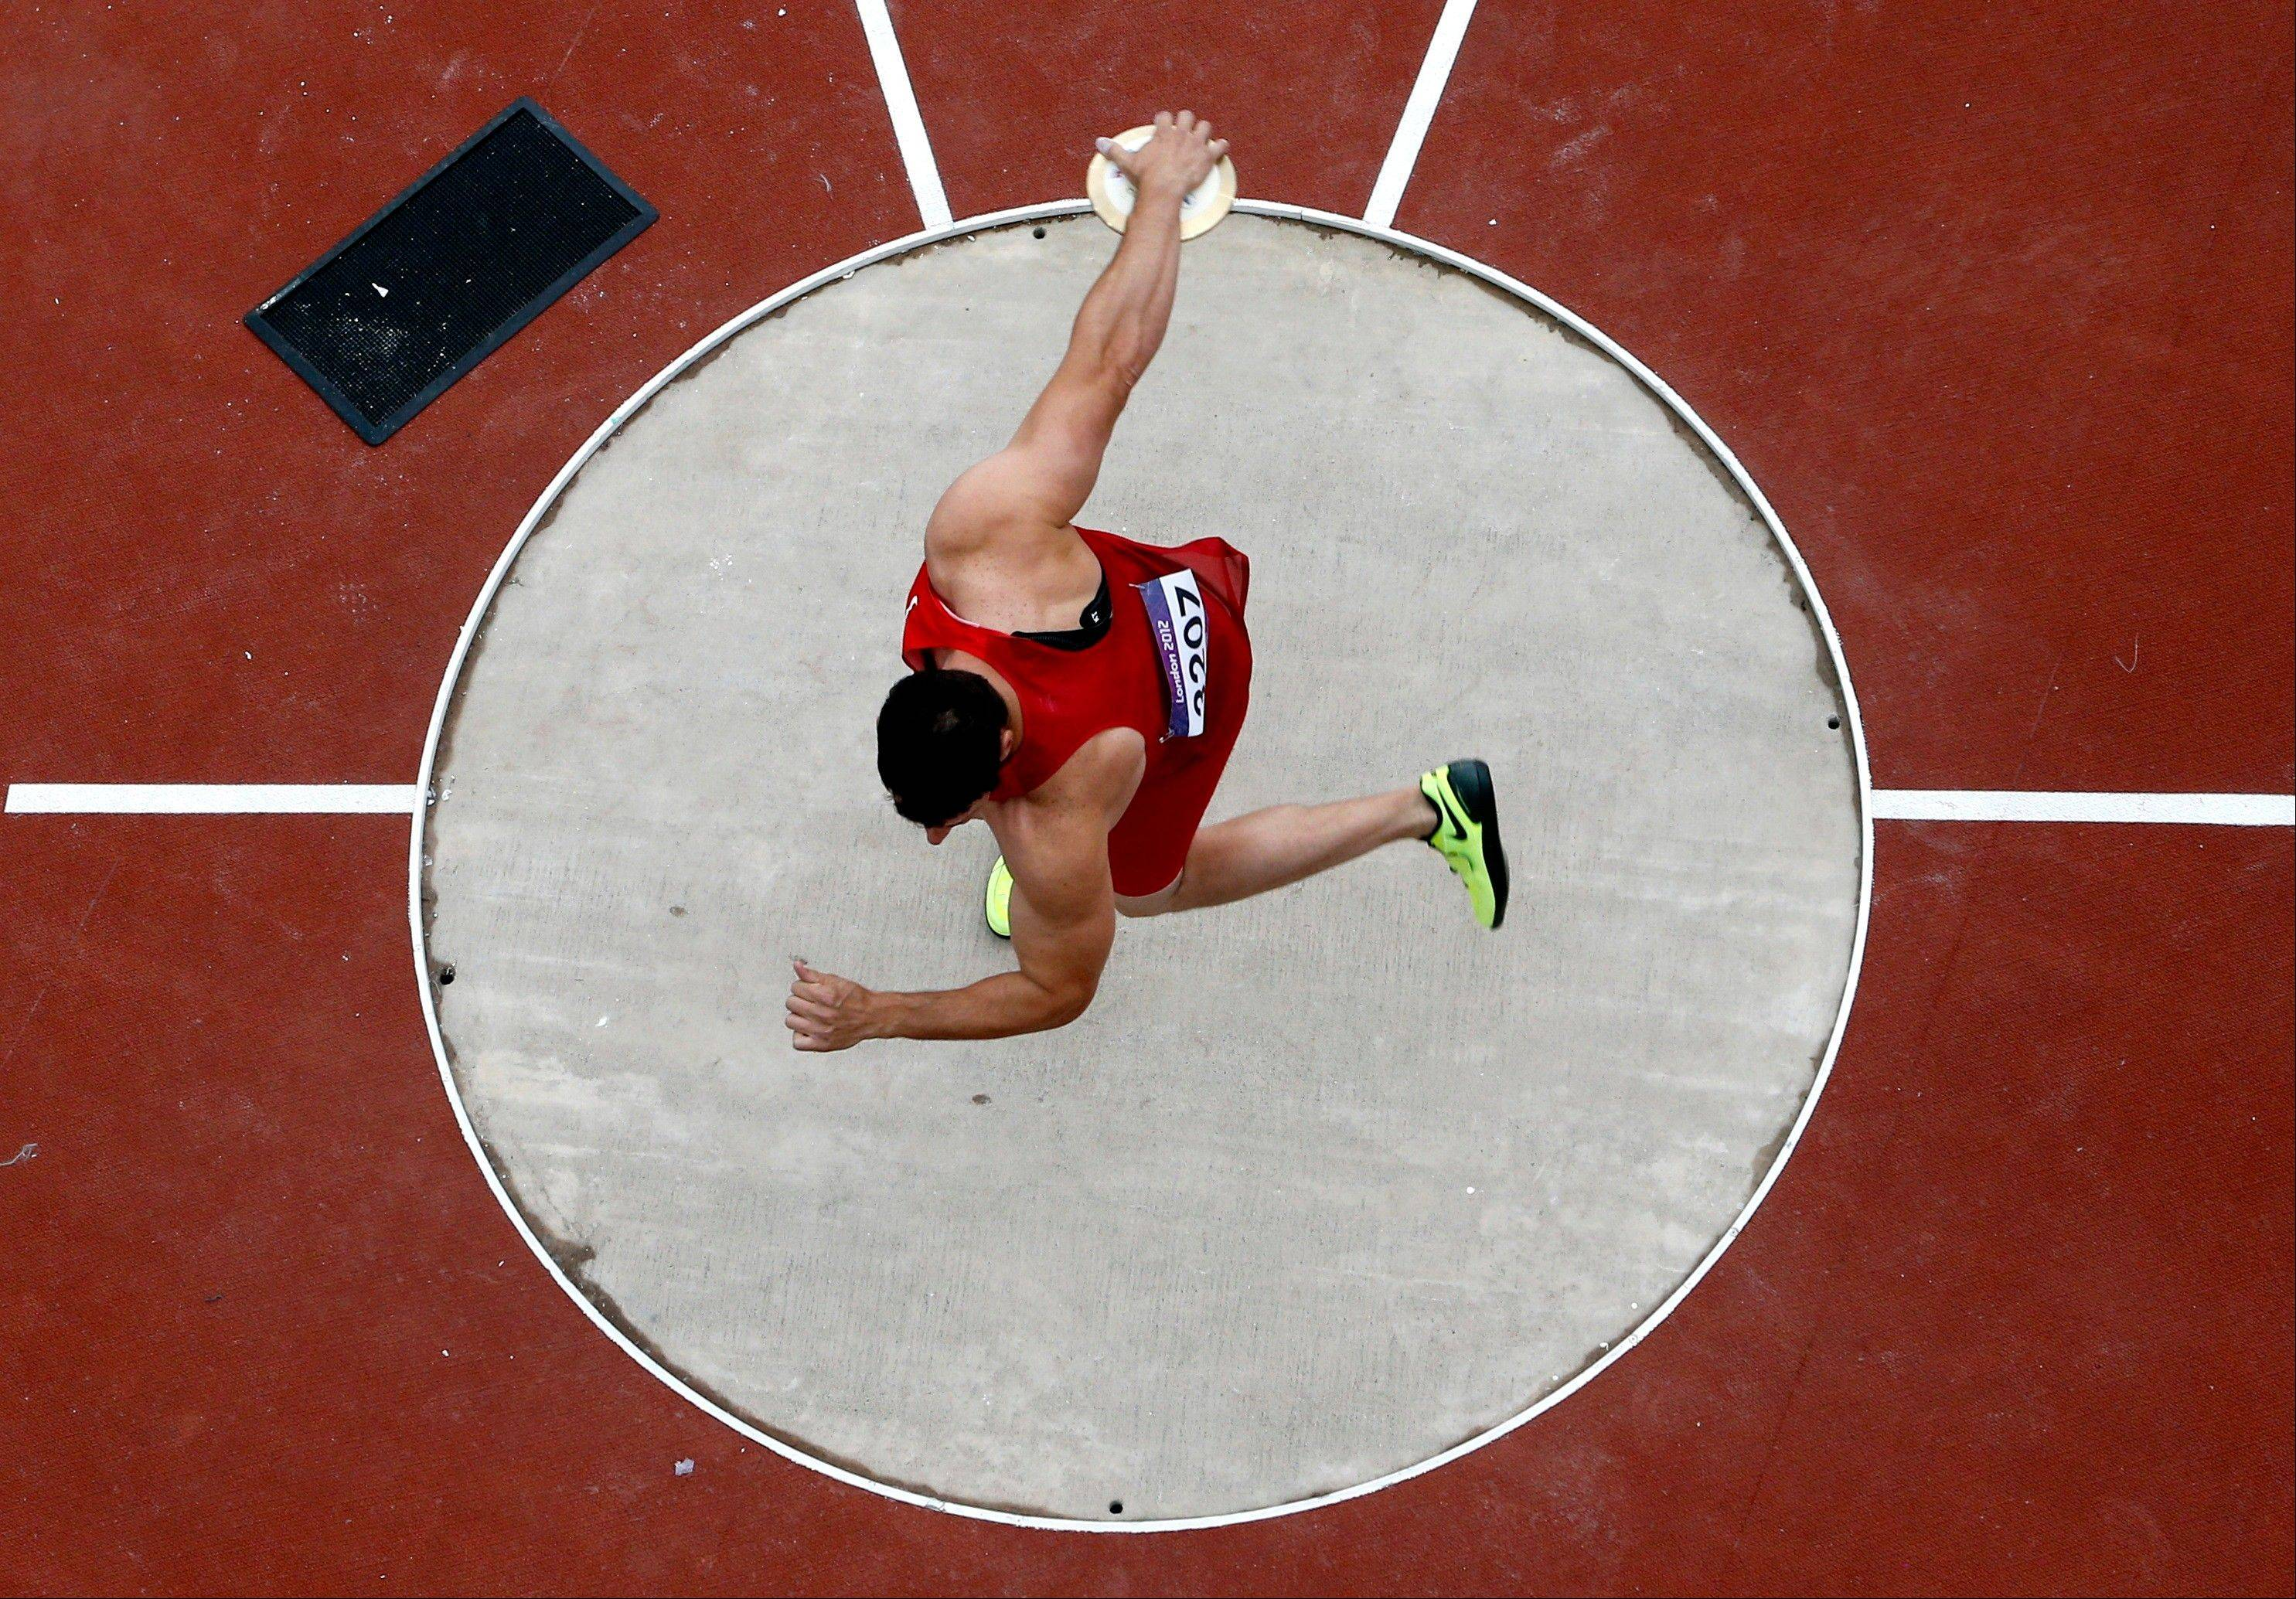 Lance Brooks competes in the men's discus qualification during athletics competitions at the Olympic Stadium Monday.